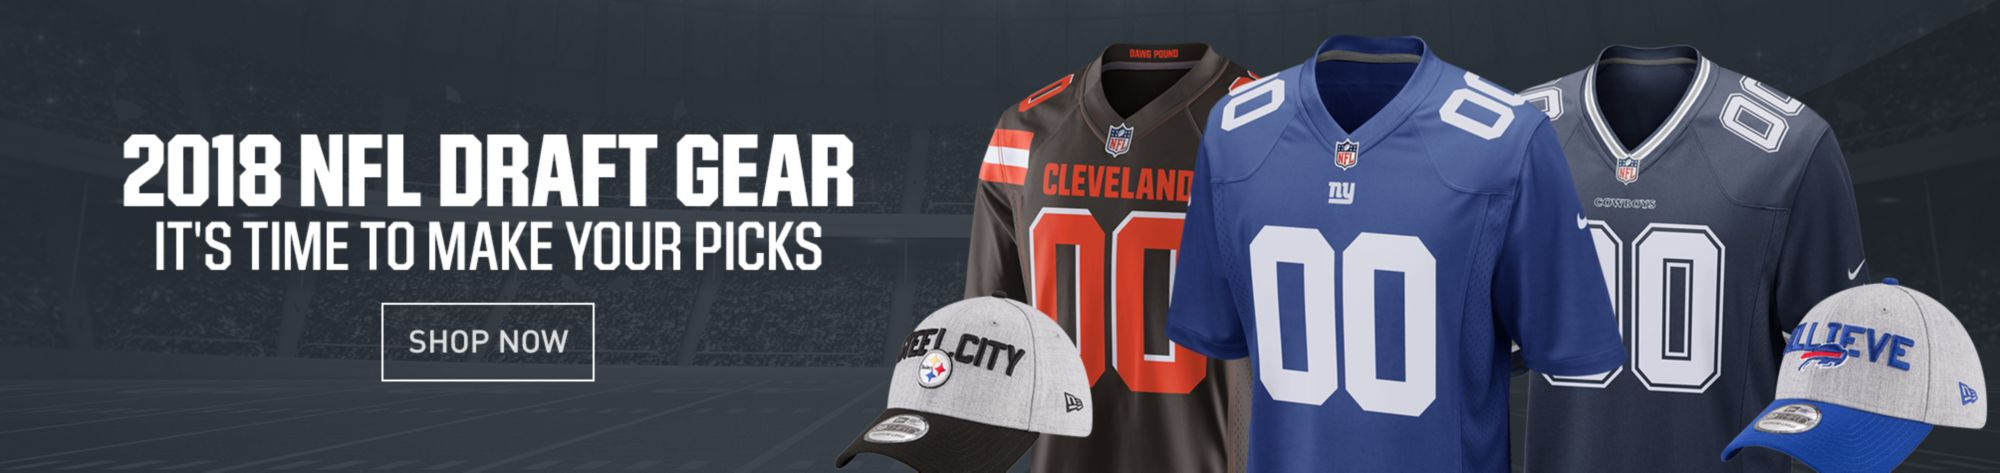 2018 NFL Draft Gear